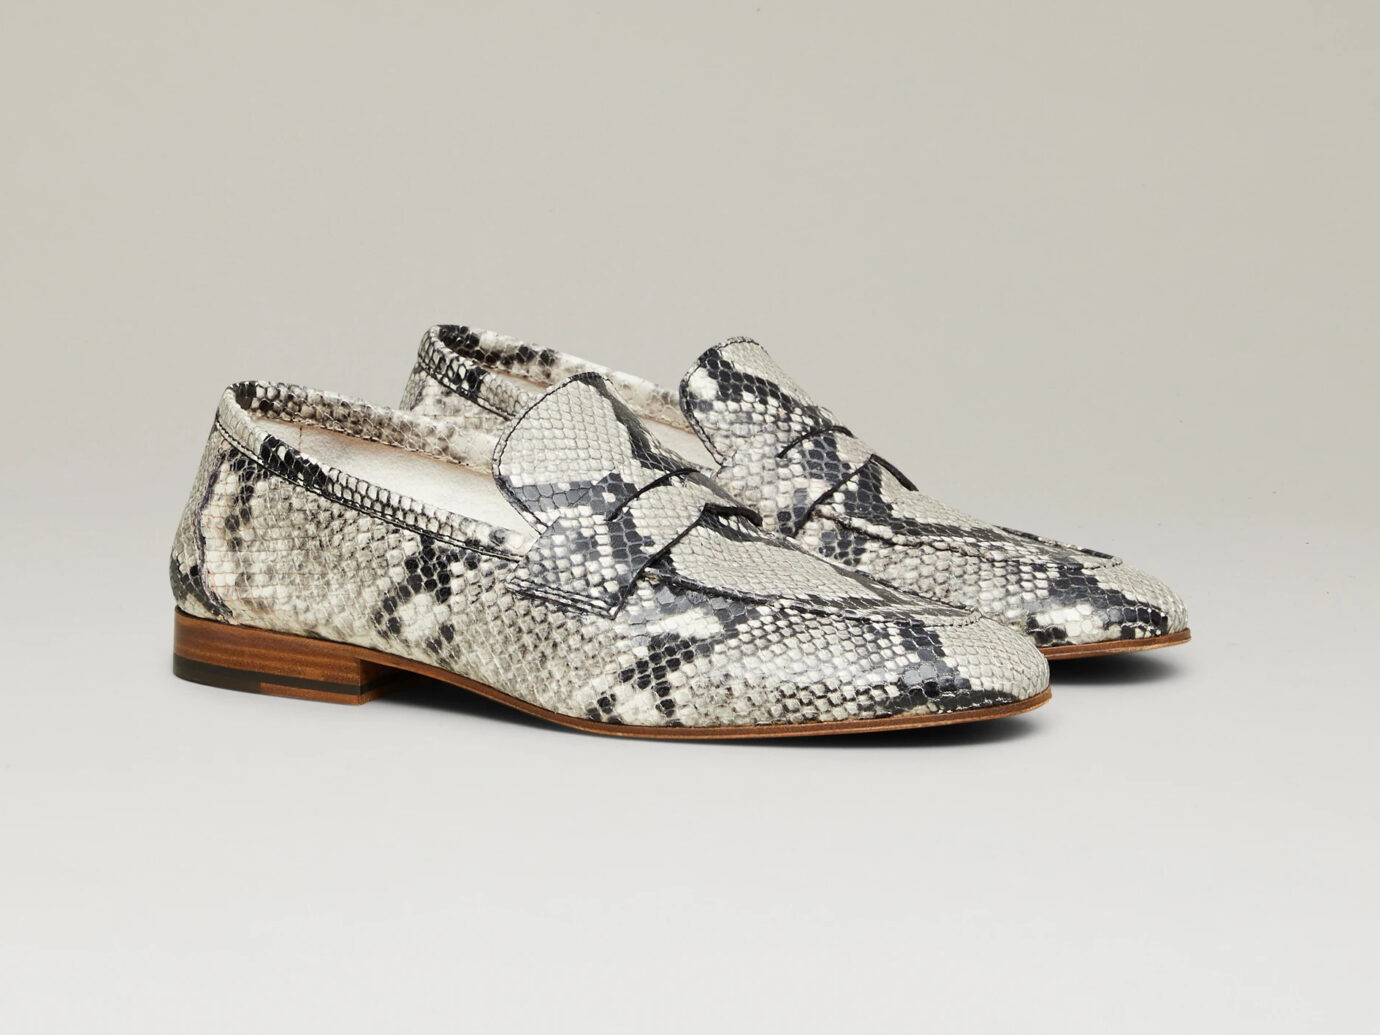 M.Gemi The Sacca Donna Perfect Loafer